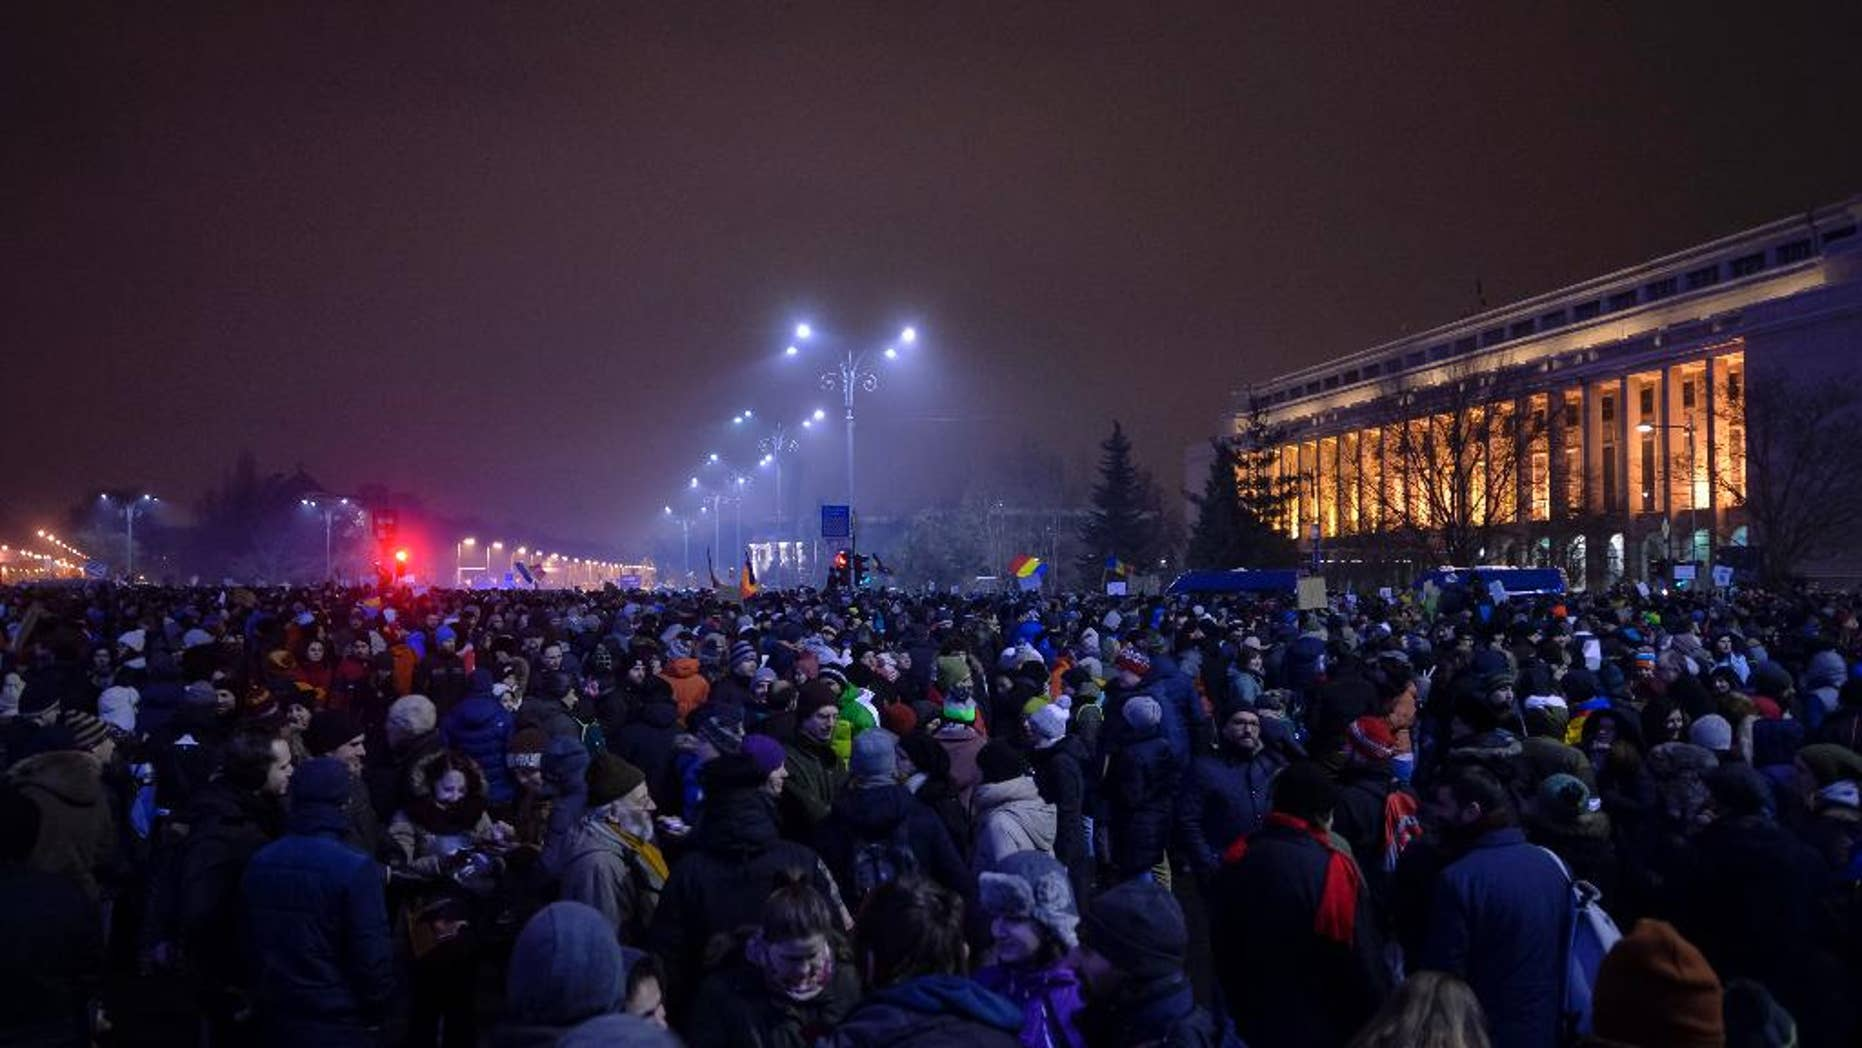 Some thousands march during a protest against the government's proposal to pardon thousands of prisoners, in Bucharest, Romania, Sunday, Jan. 22, 2017.  Some thousands marched through the streets of the Romanian capital and other cities to protest against the pardon of prisoners which critics say could weaken the anti-corruption fight. (AP Photo/Andreea Alexandru)